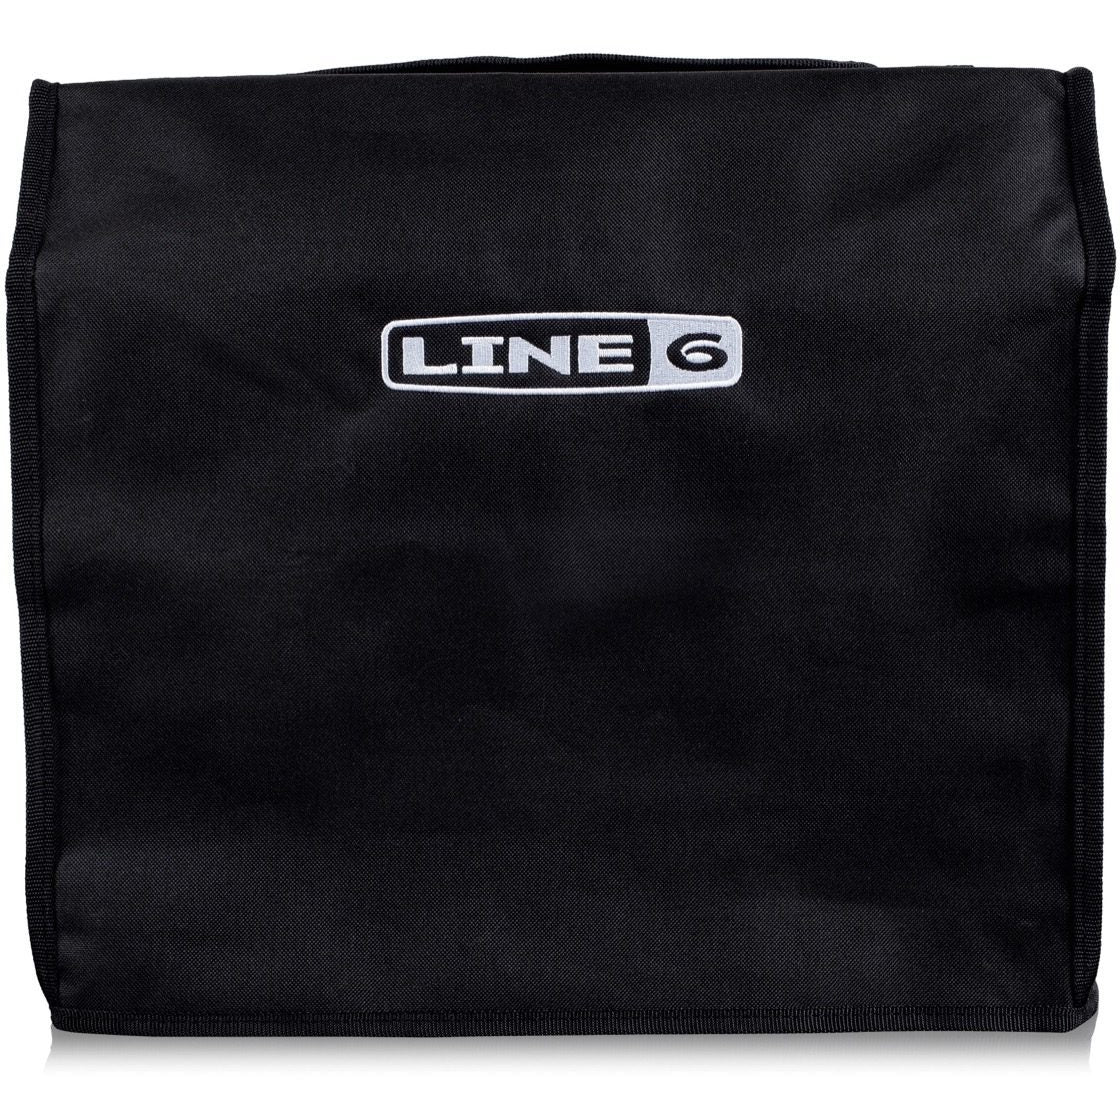 Line 6 Spider V 30 Guitar Amplifier Cover